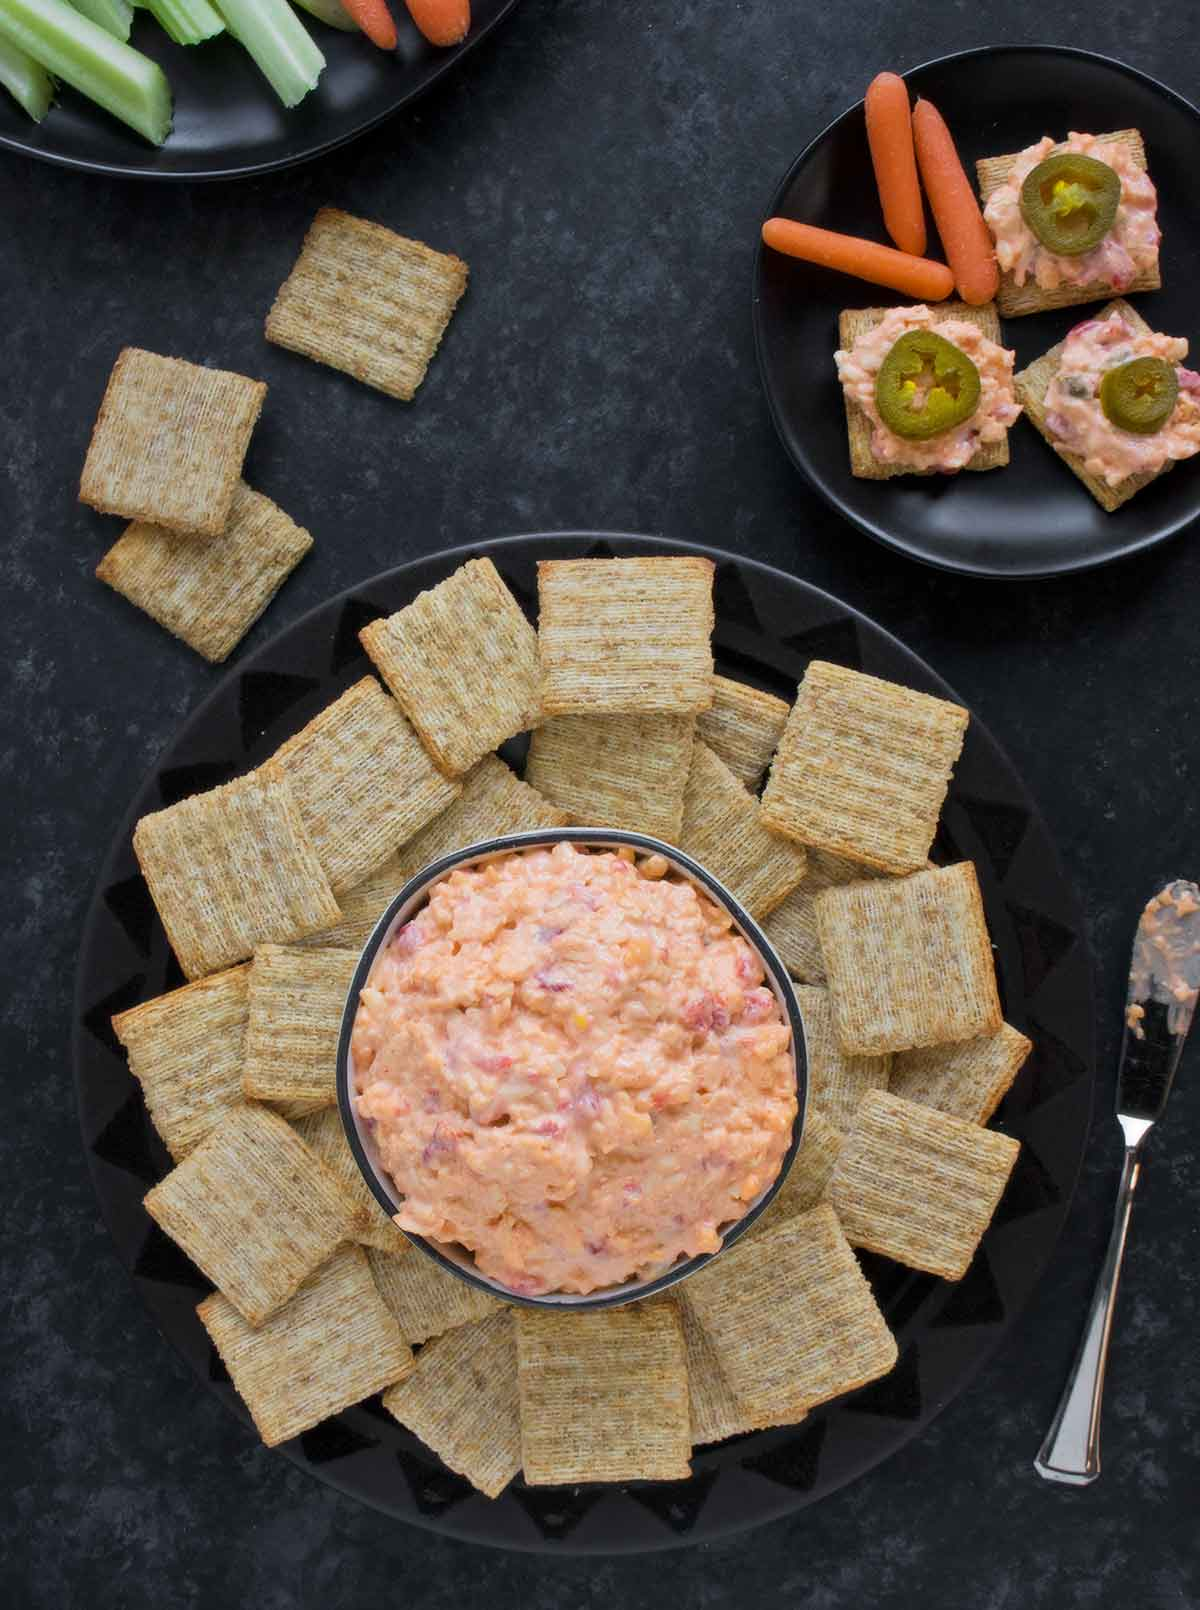 Spicy Pimento Cheese served with Triscuits